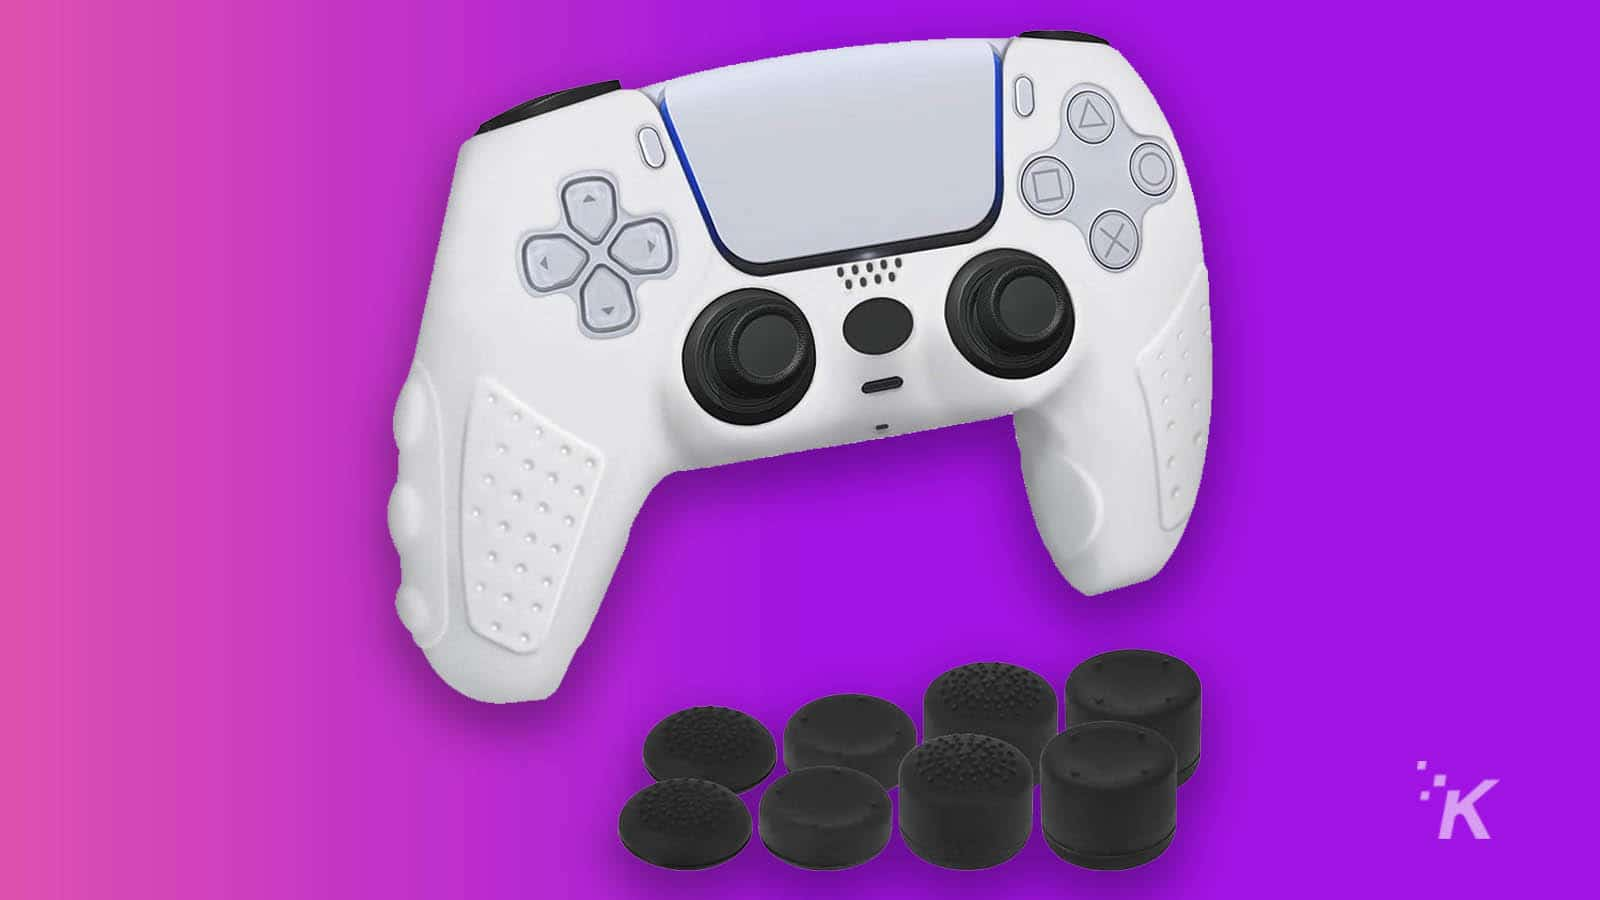 Ps5 Controller Skins Fortnite The 7 Best Ps5 Accessories You Can Buy Right Now